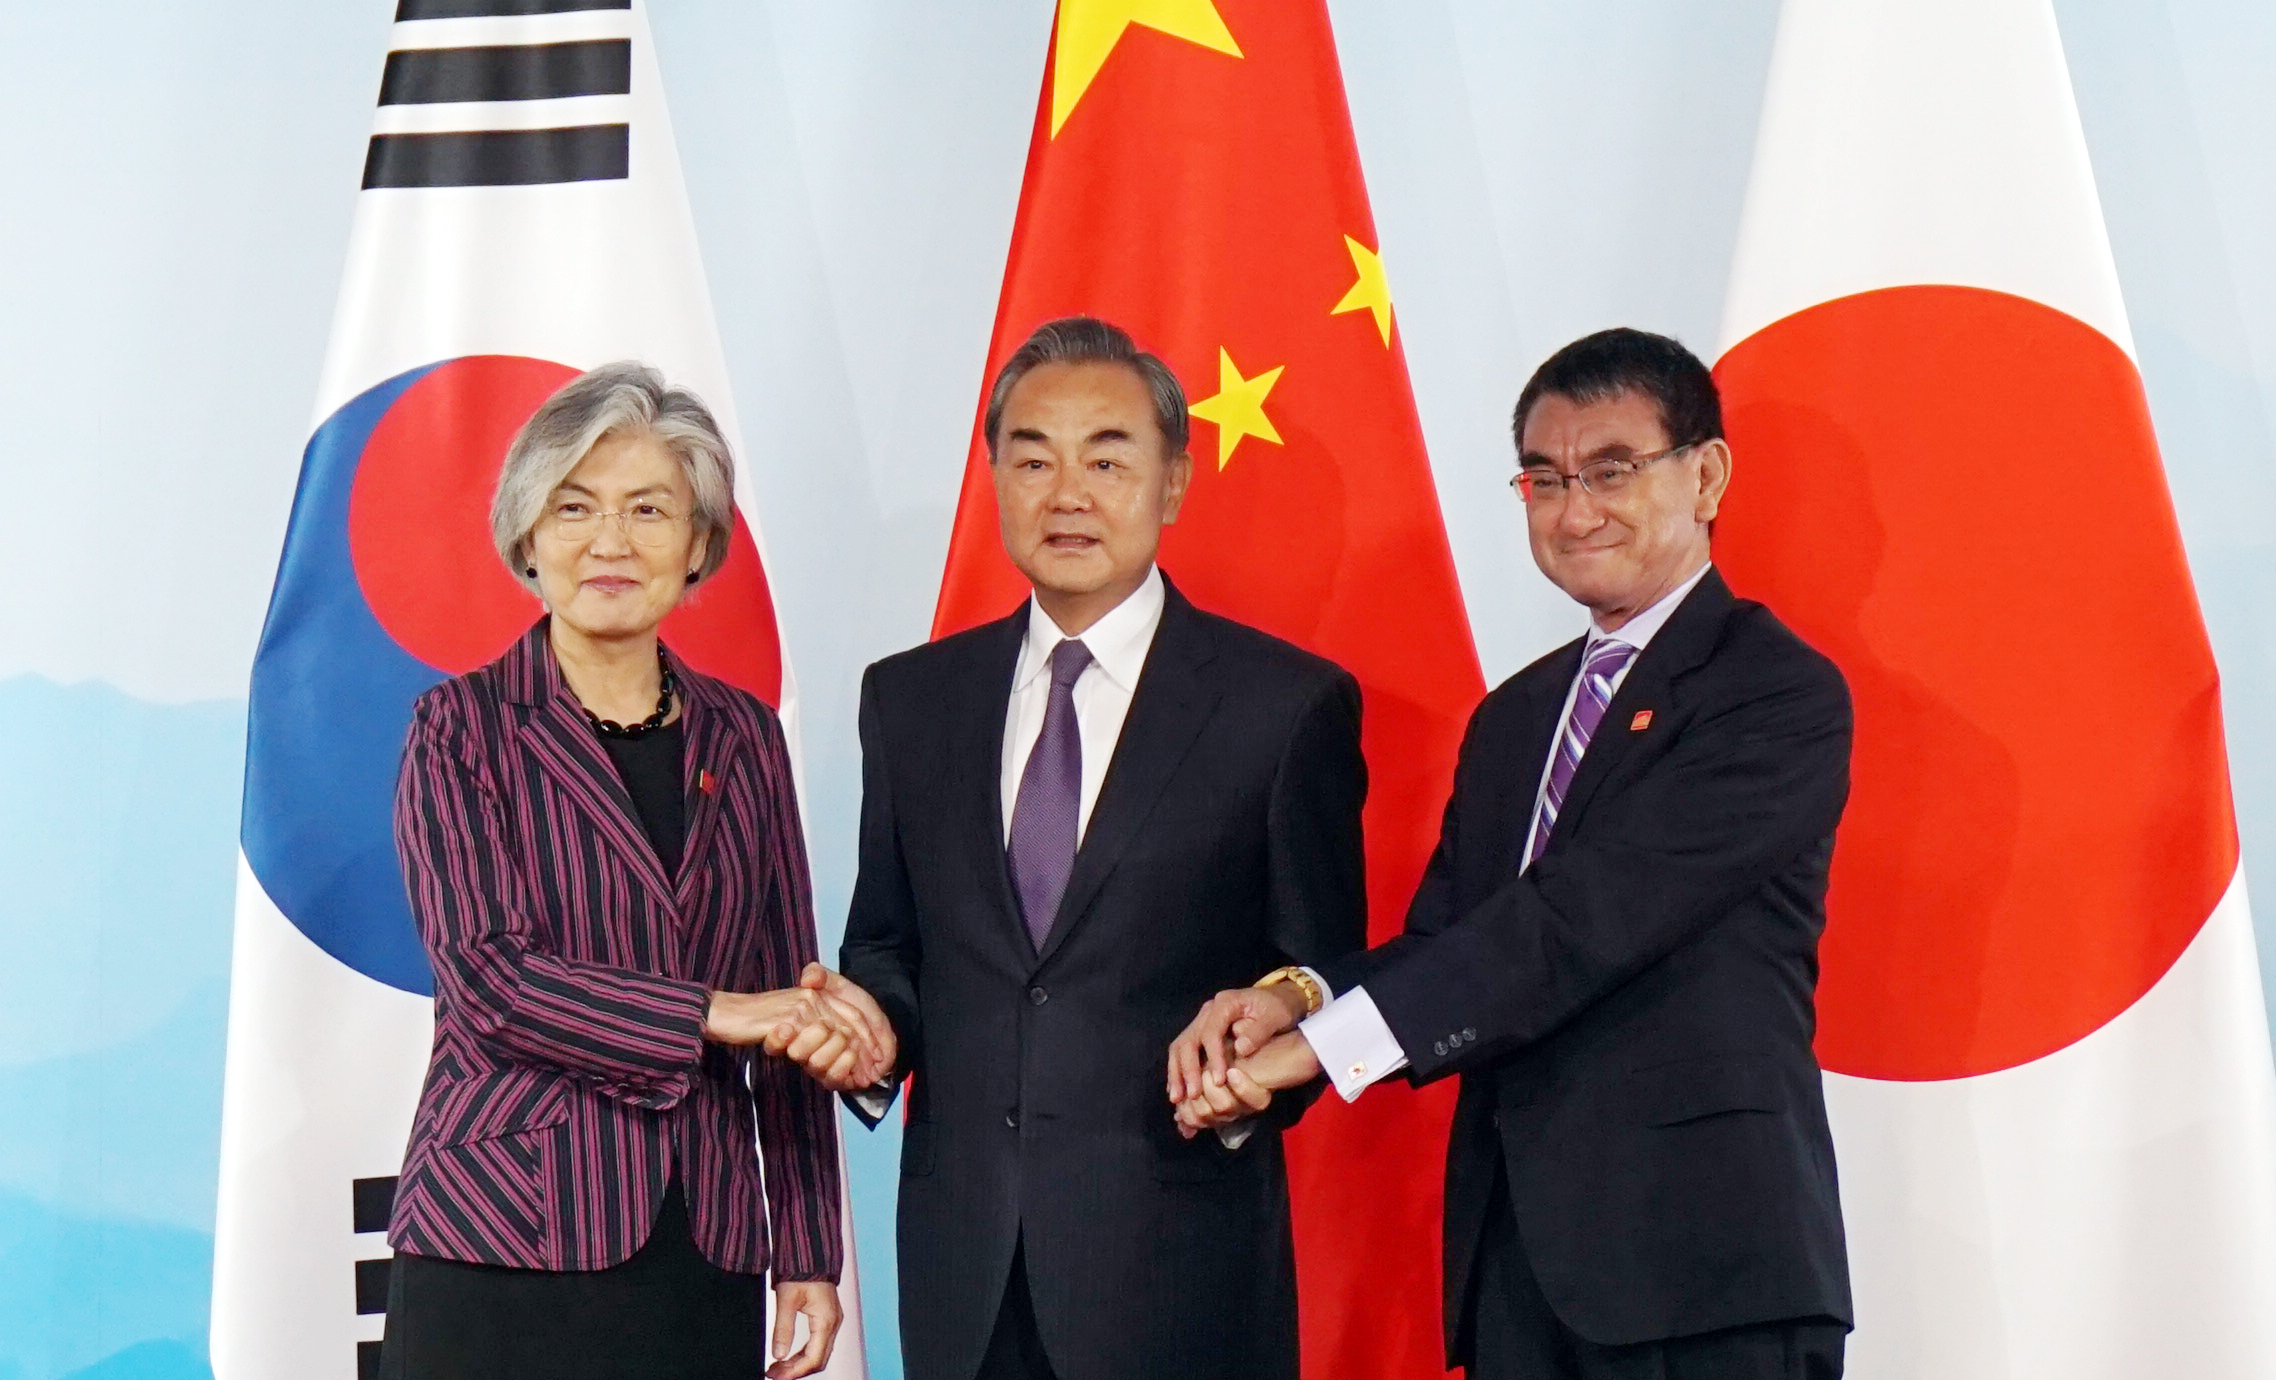 South Korean Foreign Minister Kang Kyung-wha (L), Chinese Foreign Minister Wang Yi (C) and Japanese Foreign Minister Taro Kono (R) hold hands ahead of the ninth trilateral foreign ministers' meeting in Beijing, China on August 21, 2019. <Photo: Yonhap News>